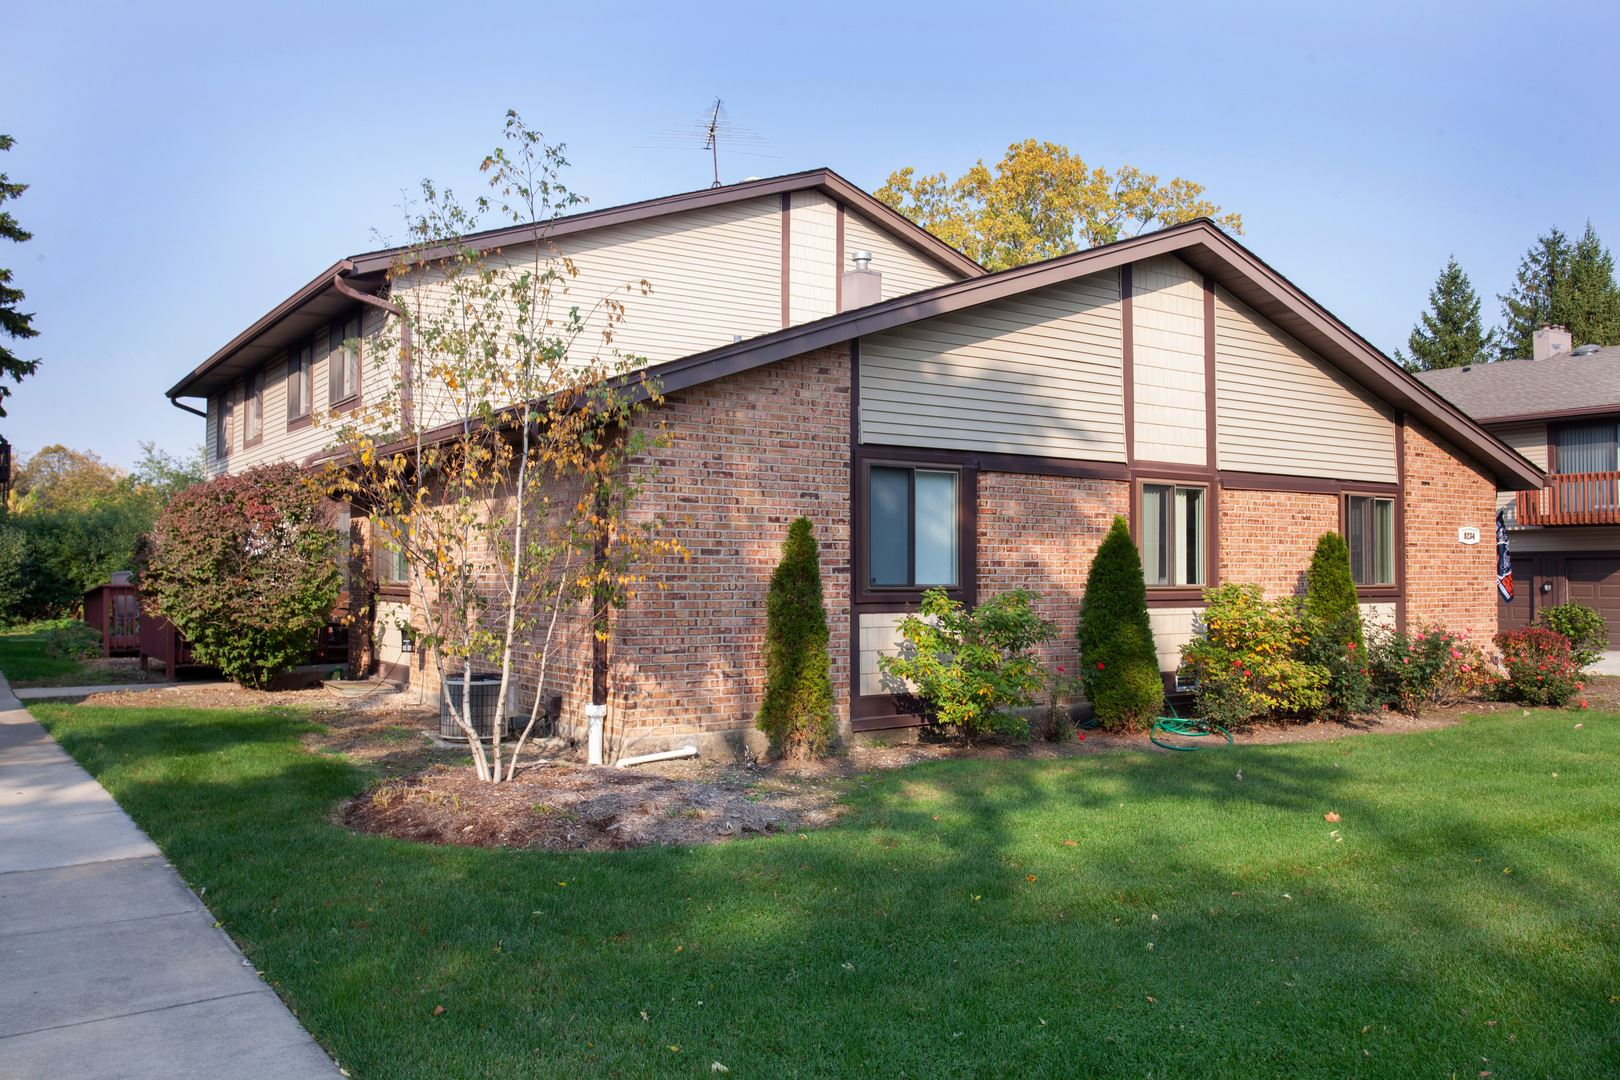 Photo for 8234 Portsmouth Drive #D, Darien, IL 60561 (MLS # 10910106)